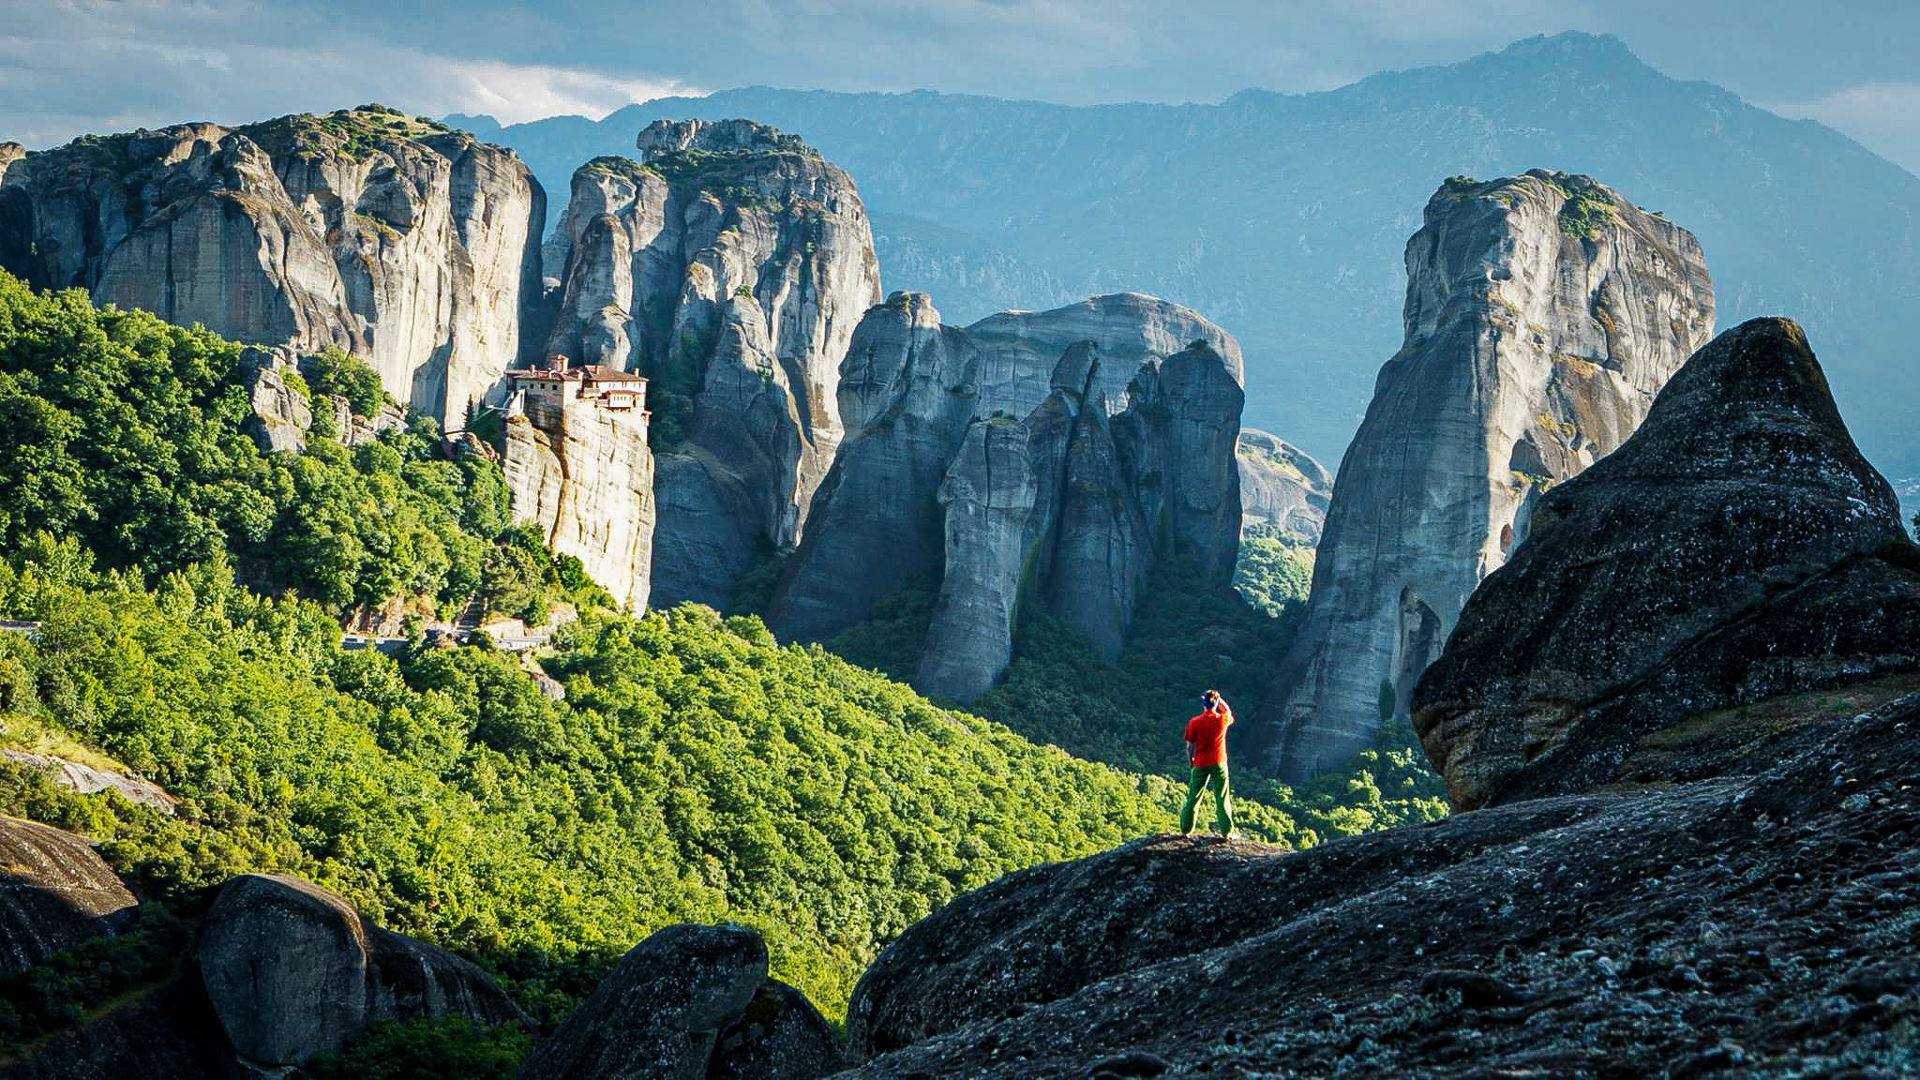 Exploring the hiking paths of Meteora